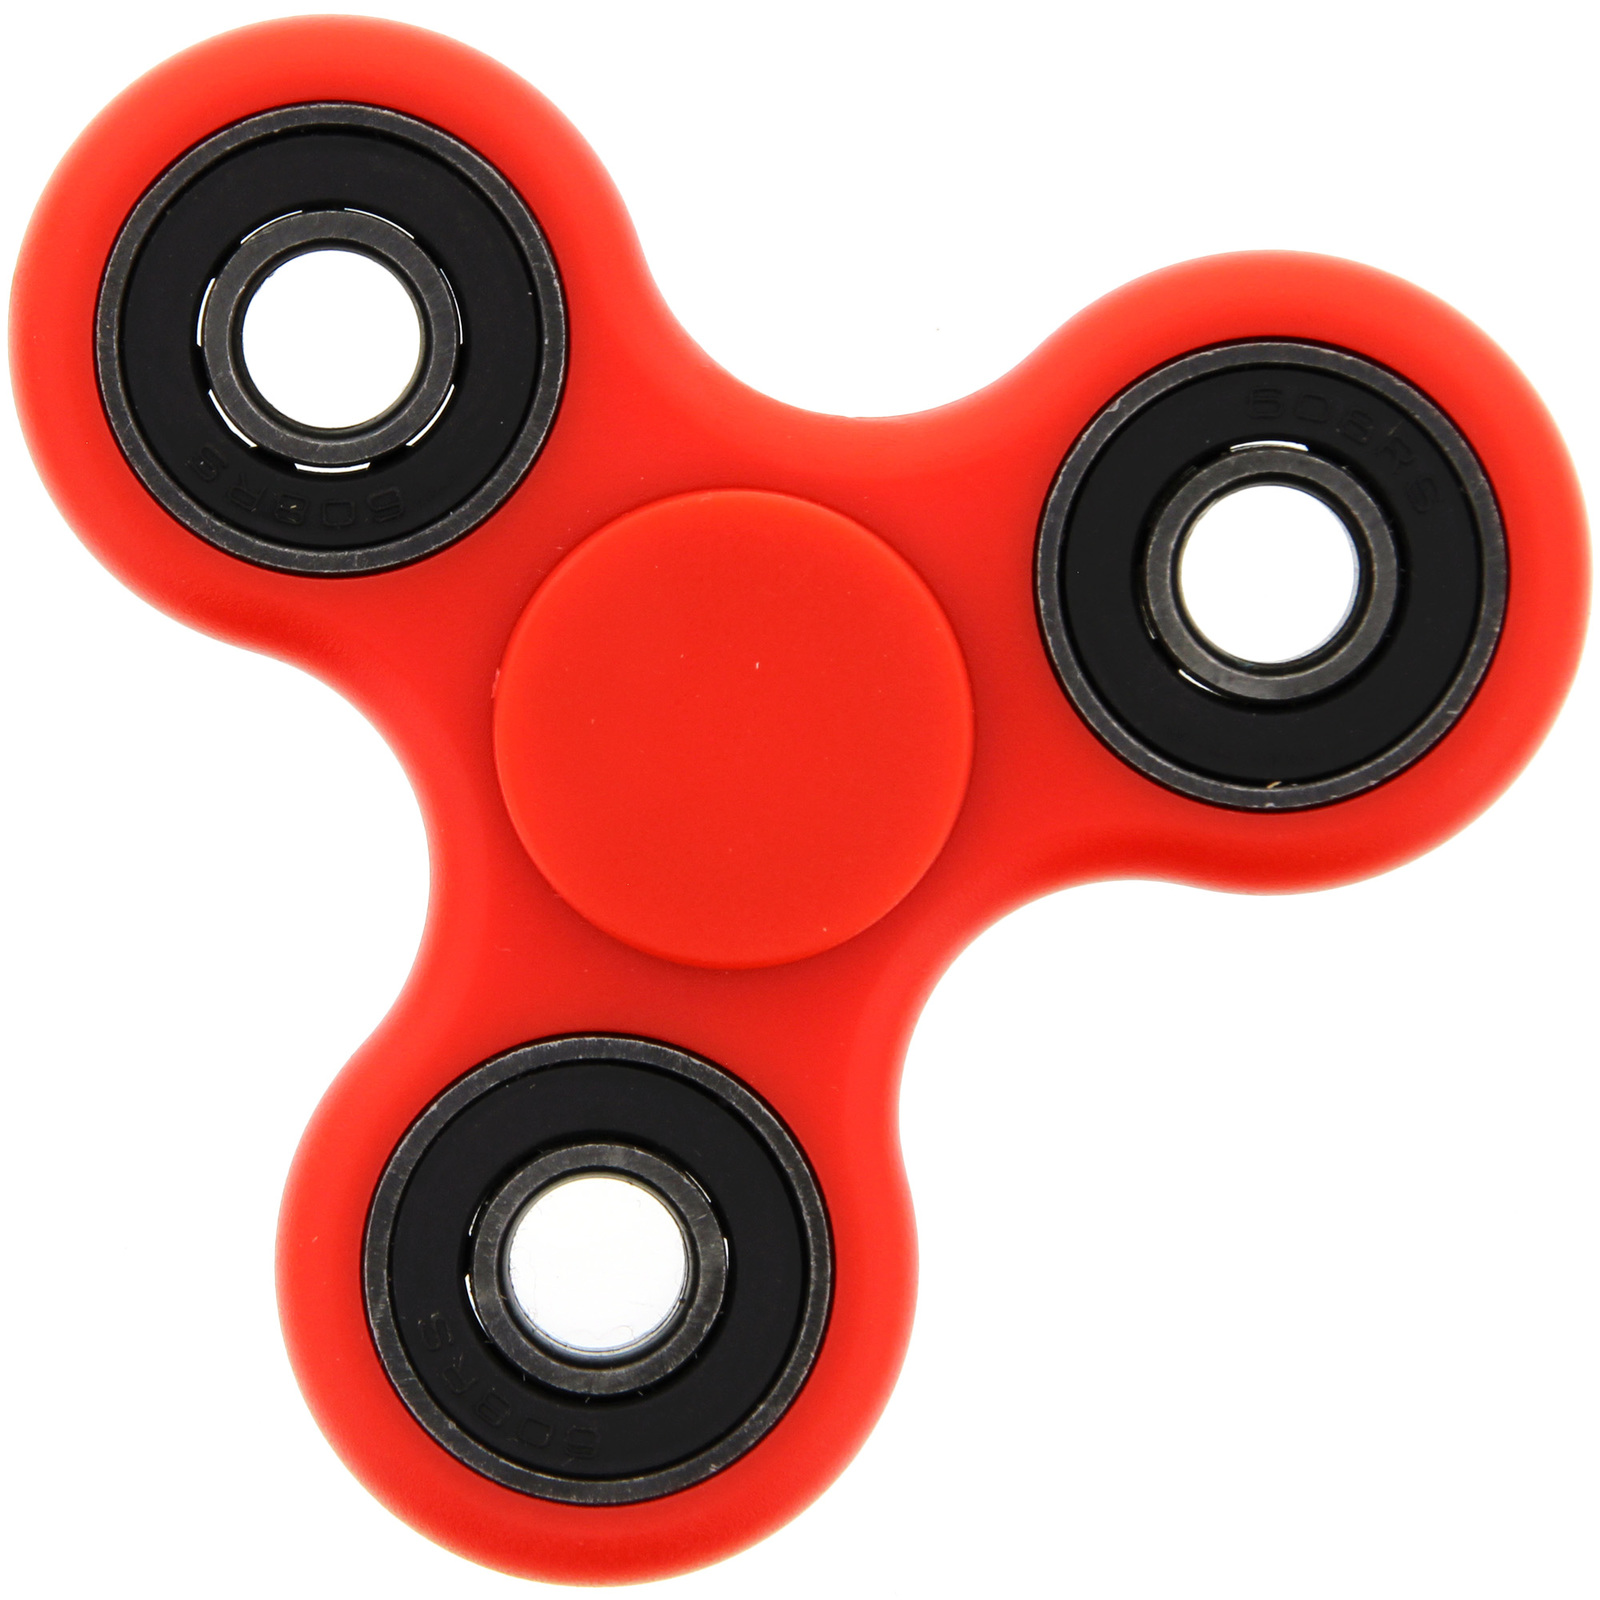 buy fidget spinner red at mighty ape nz. Black Bedroom Furniture Sets. Home Design Ideas